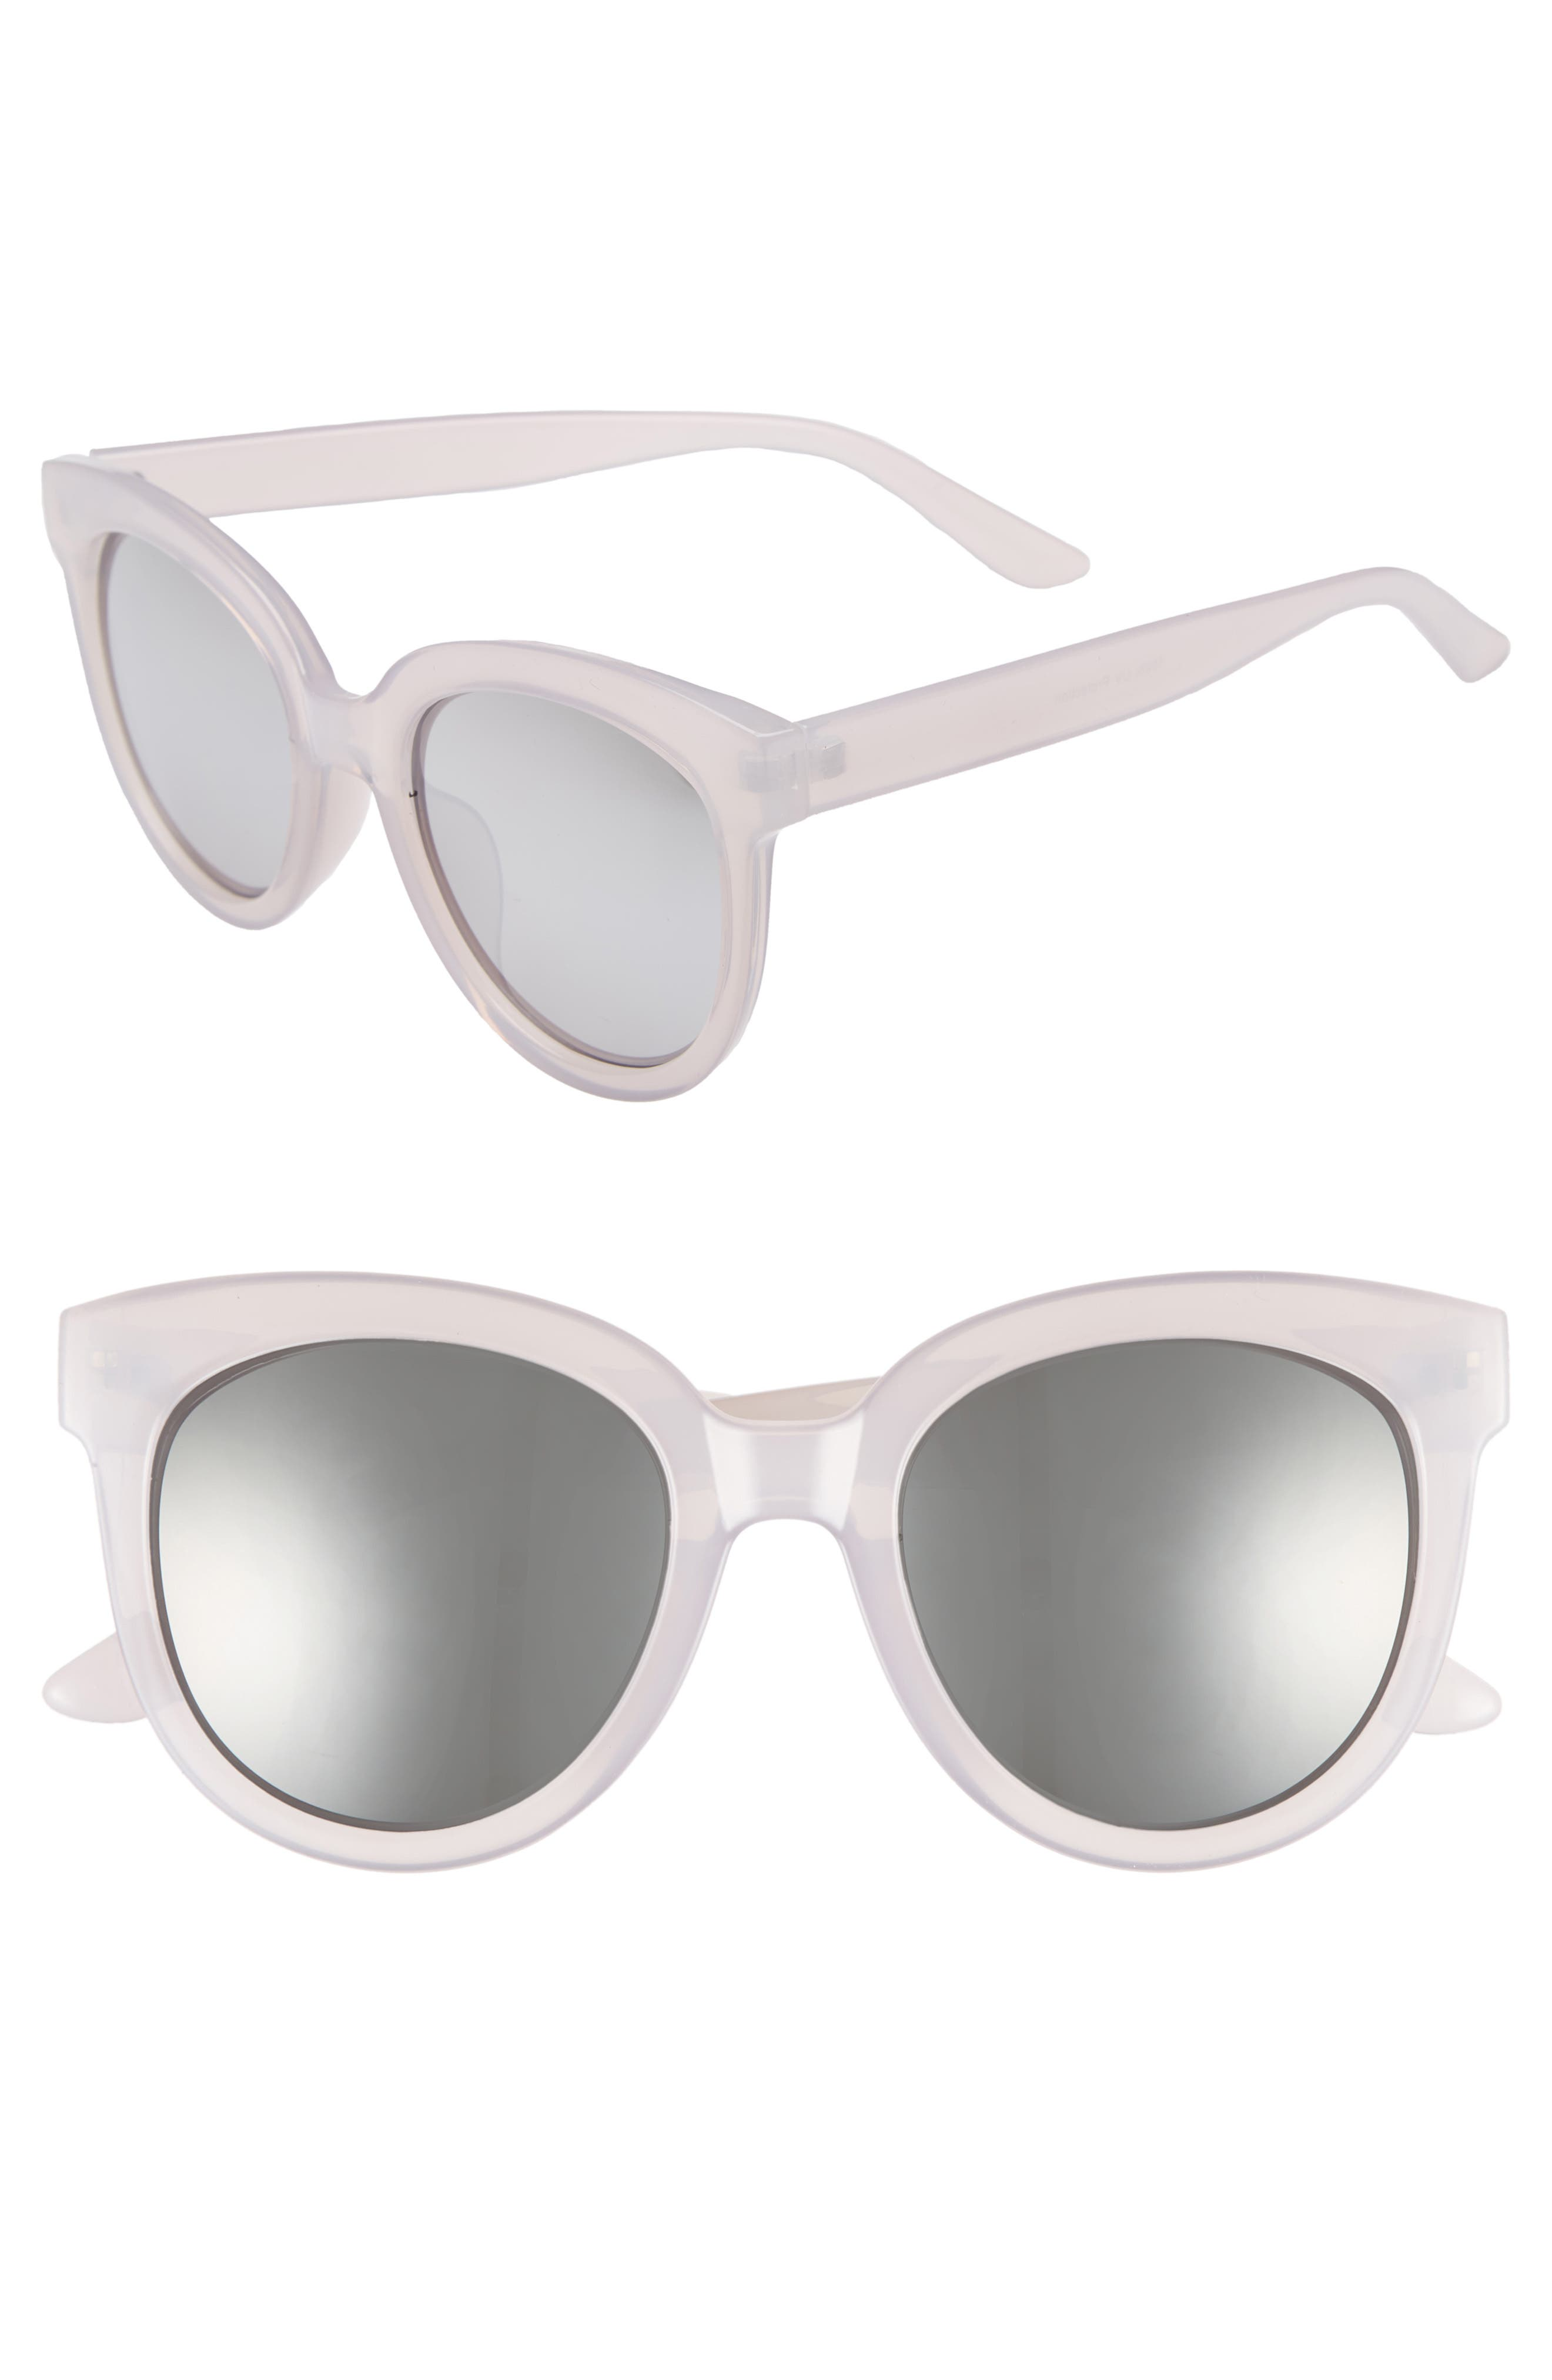 53mm Frosted Cat Eye Sunglasses,                         Main,                         color, 050